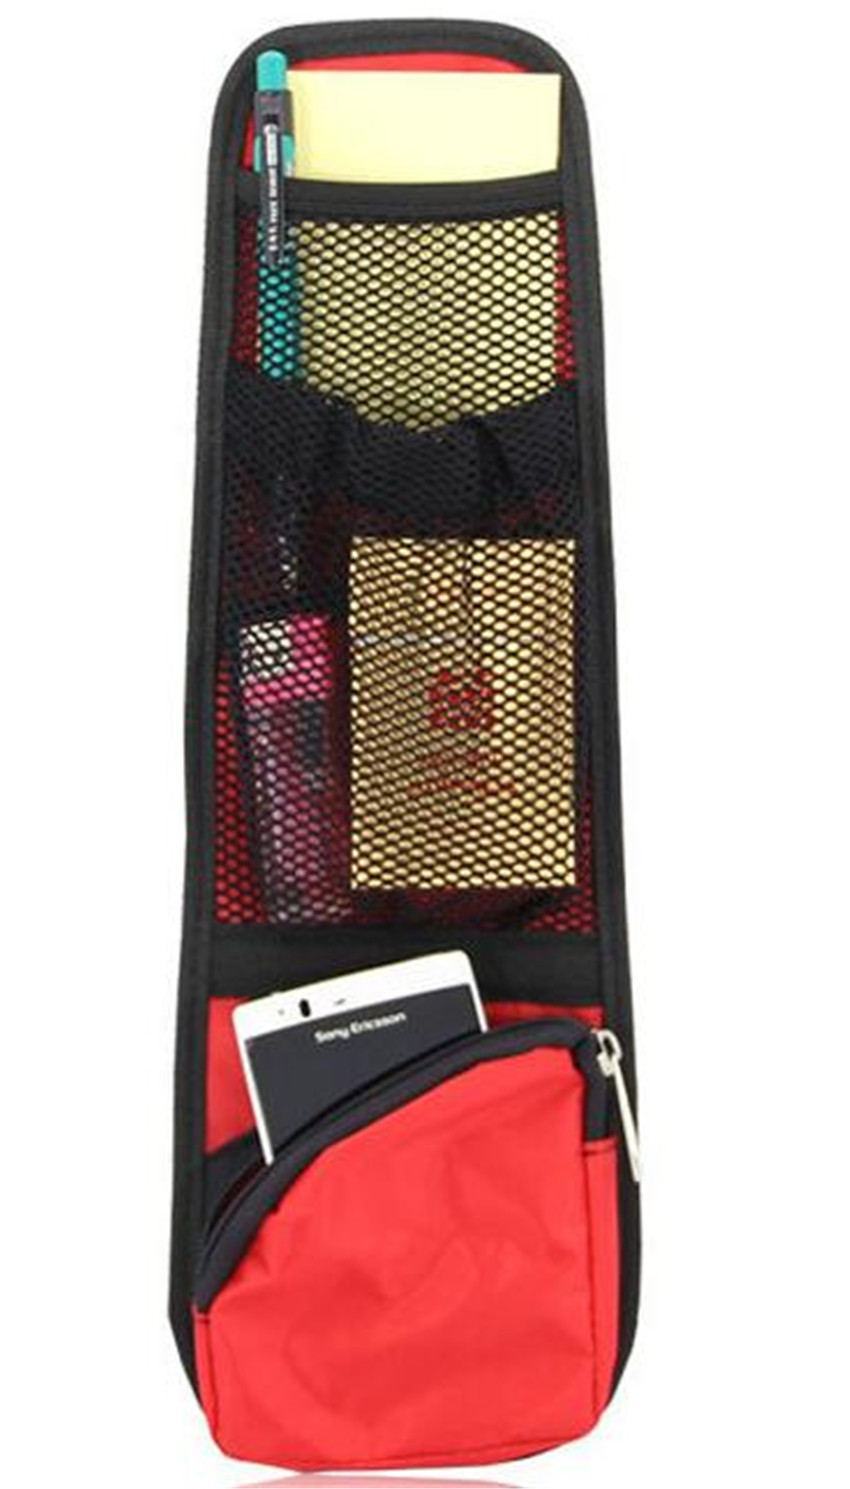 hot sale Multifunctional vehicle storage bag can be placed at position, containing drinks, cola, mobile phone etc..car styling(China (Mainland))